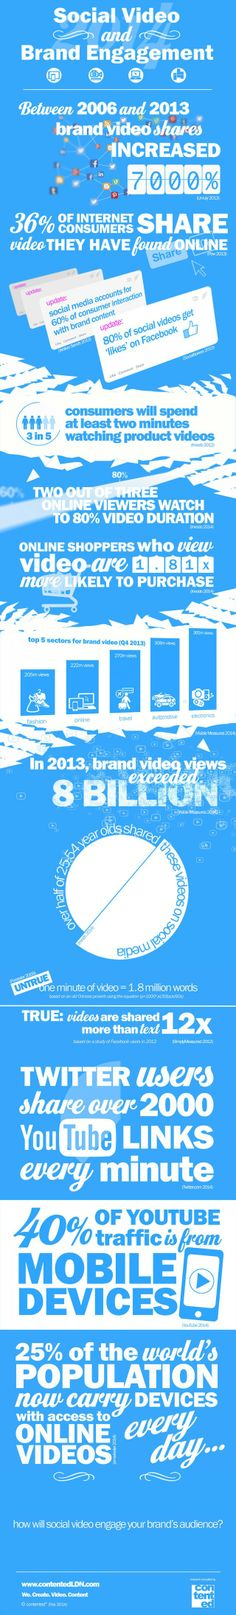 Social Video and Brand engagement #infografia #infographic #marketing